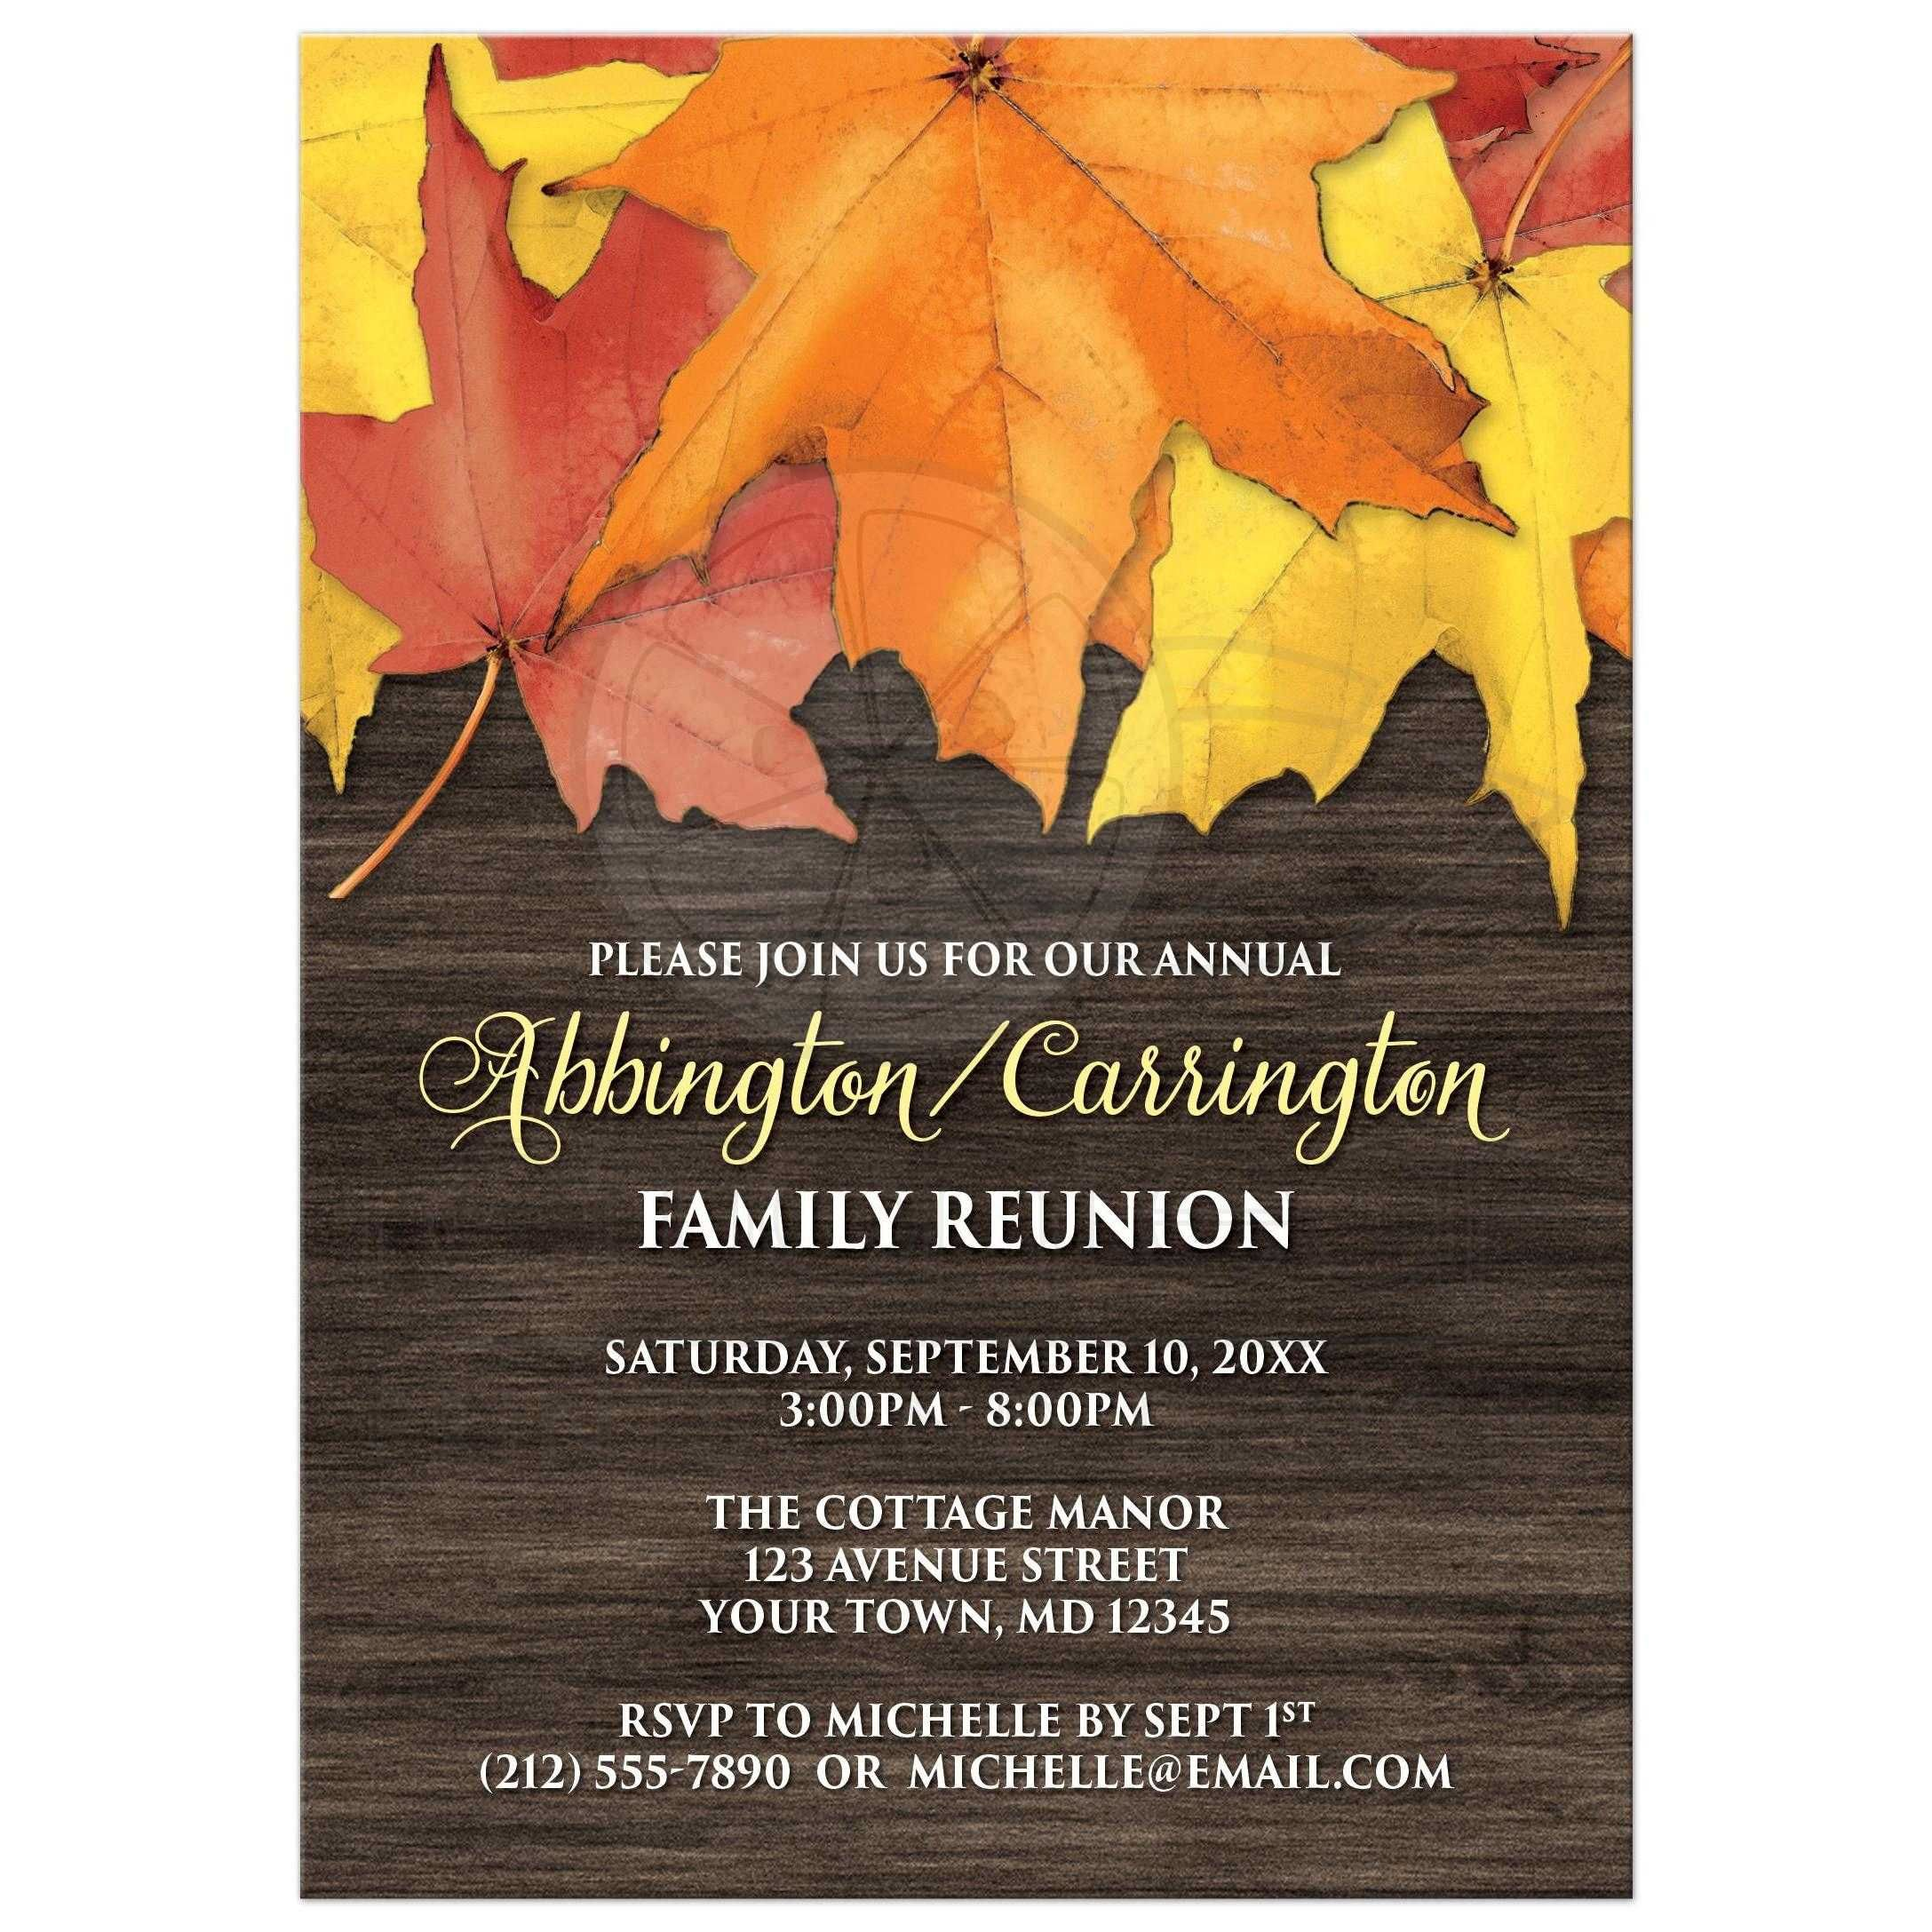 002 Exceptional Family Reunion Invitation Card Template High Def Full